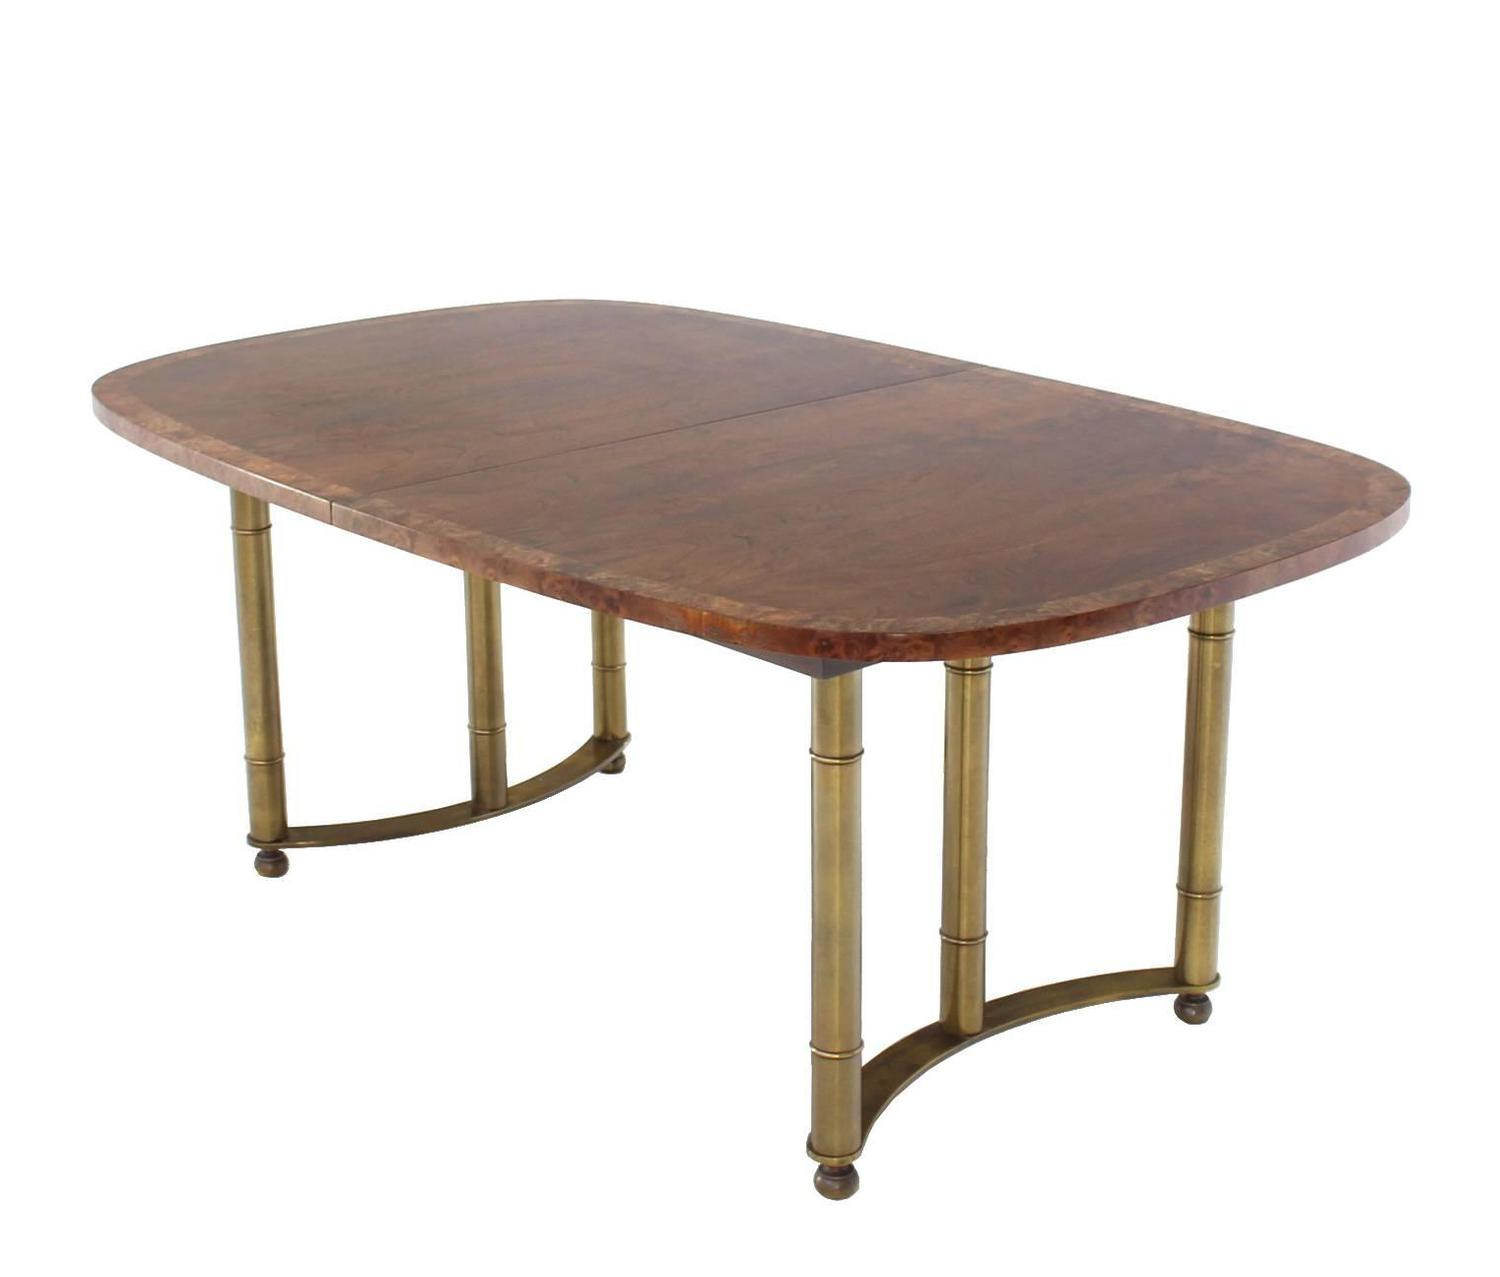 Mastercraft burl wood oval dining table with two leaves at for Wood dining room table with leaf